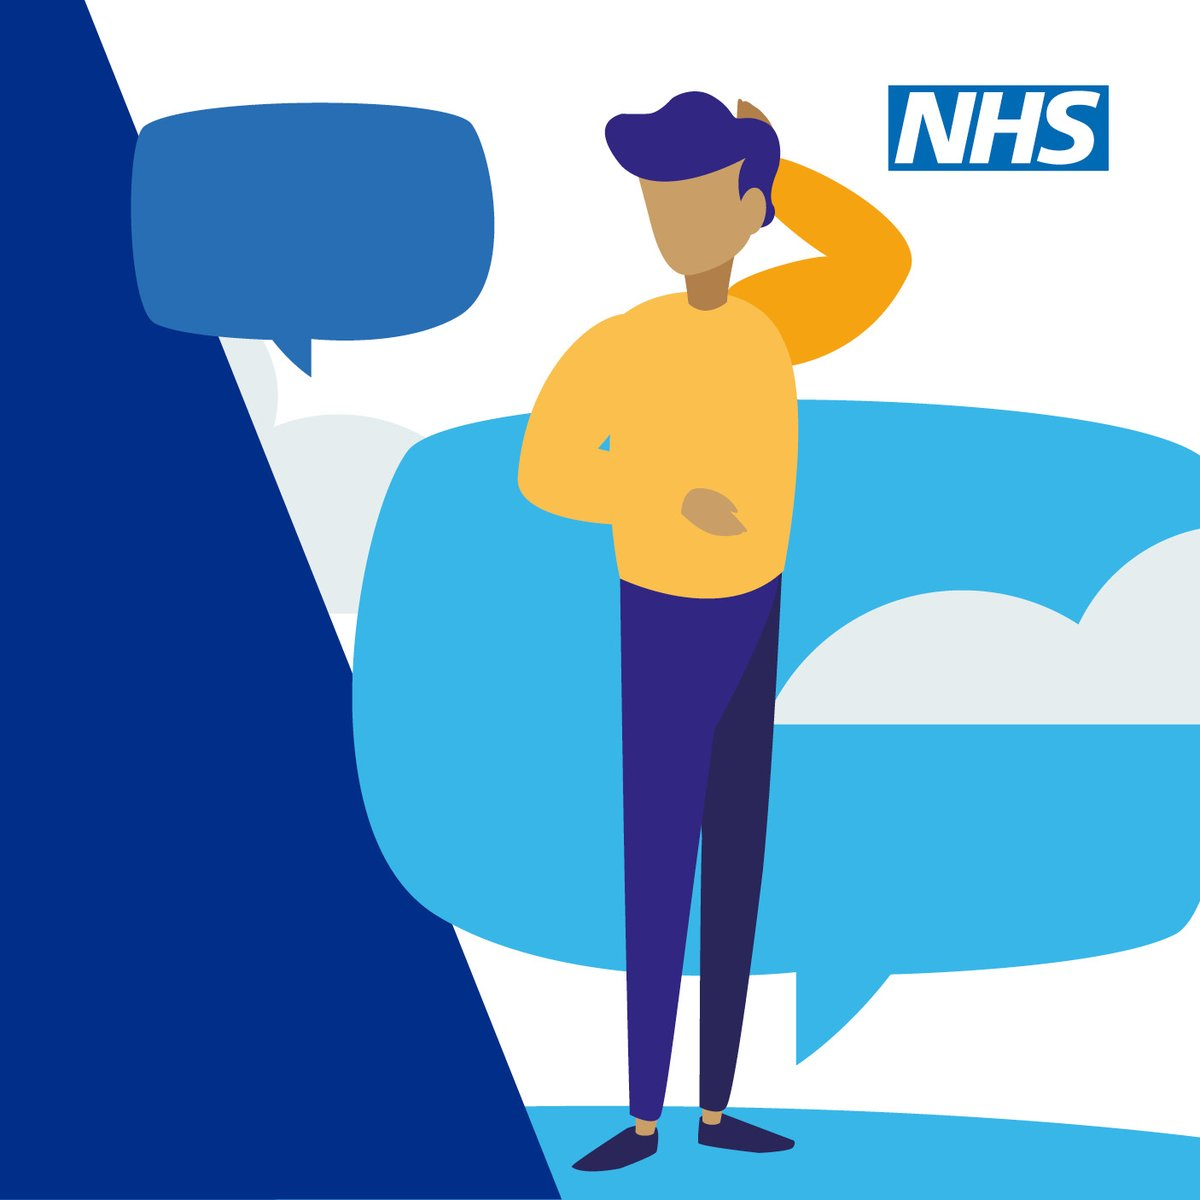 You can still access care and treatment from a GP practice, the NHS 111 online or telephone service, and from your local hospital. We're here for you when you need us sussexccgs.nhs.uk/helpushelpyou #StayWellSussex #HelpUsHelpYou